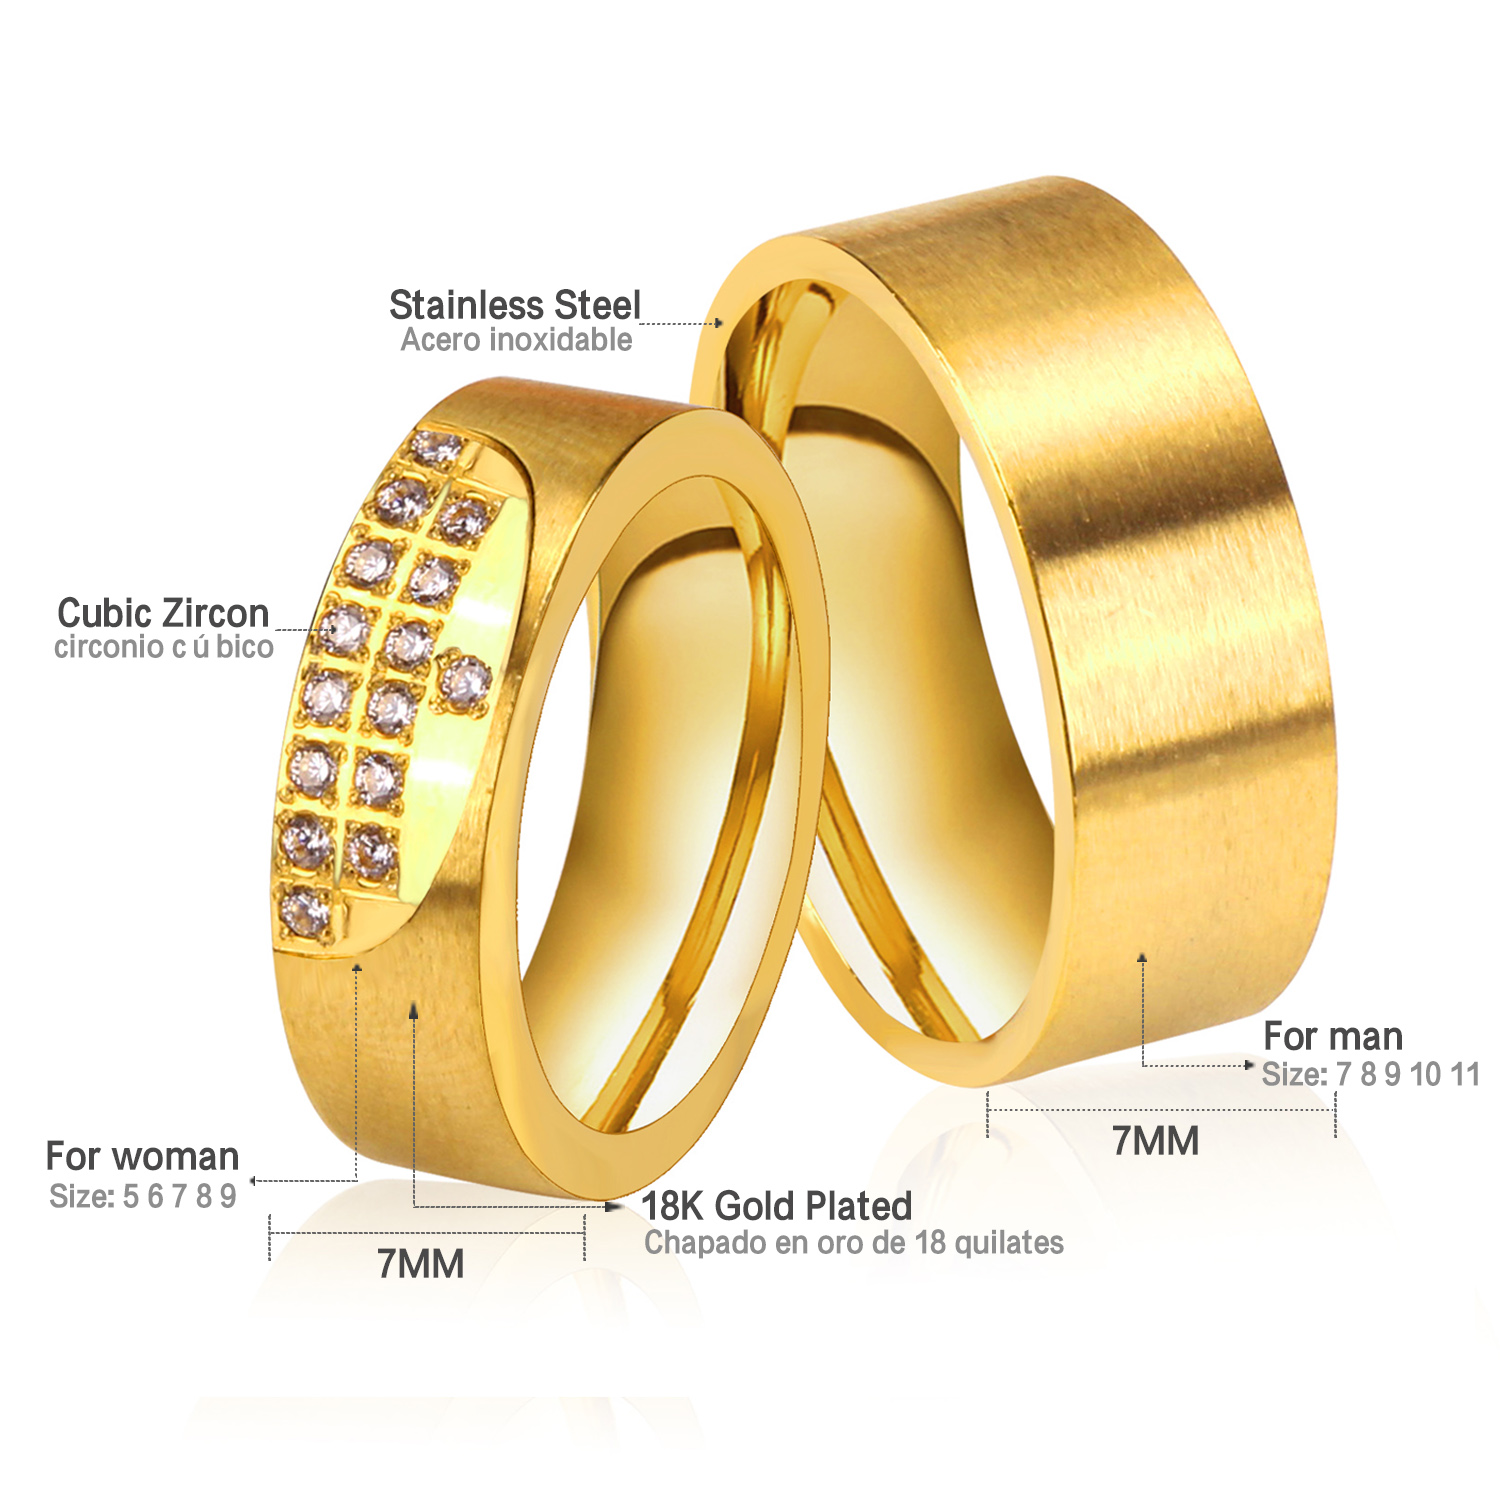 com world set solid the engagement piece color jewelry center tri dp wedding amazon and gold band rings ring